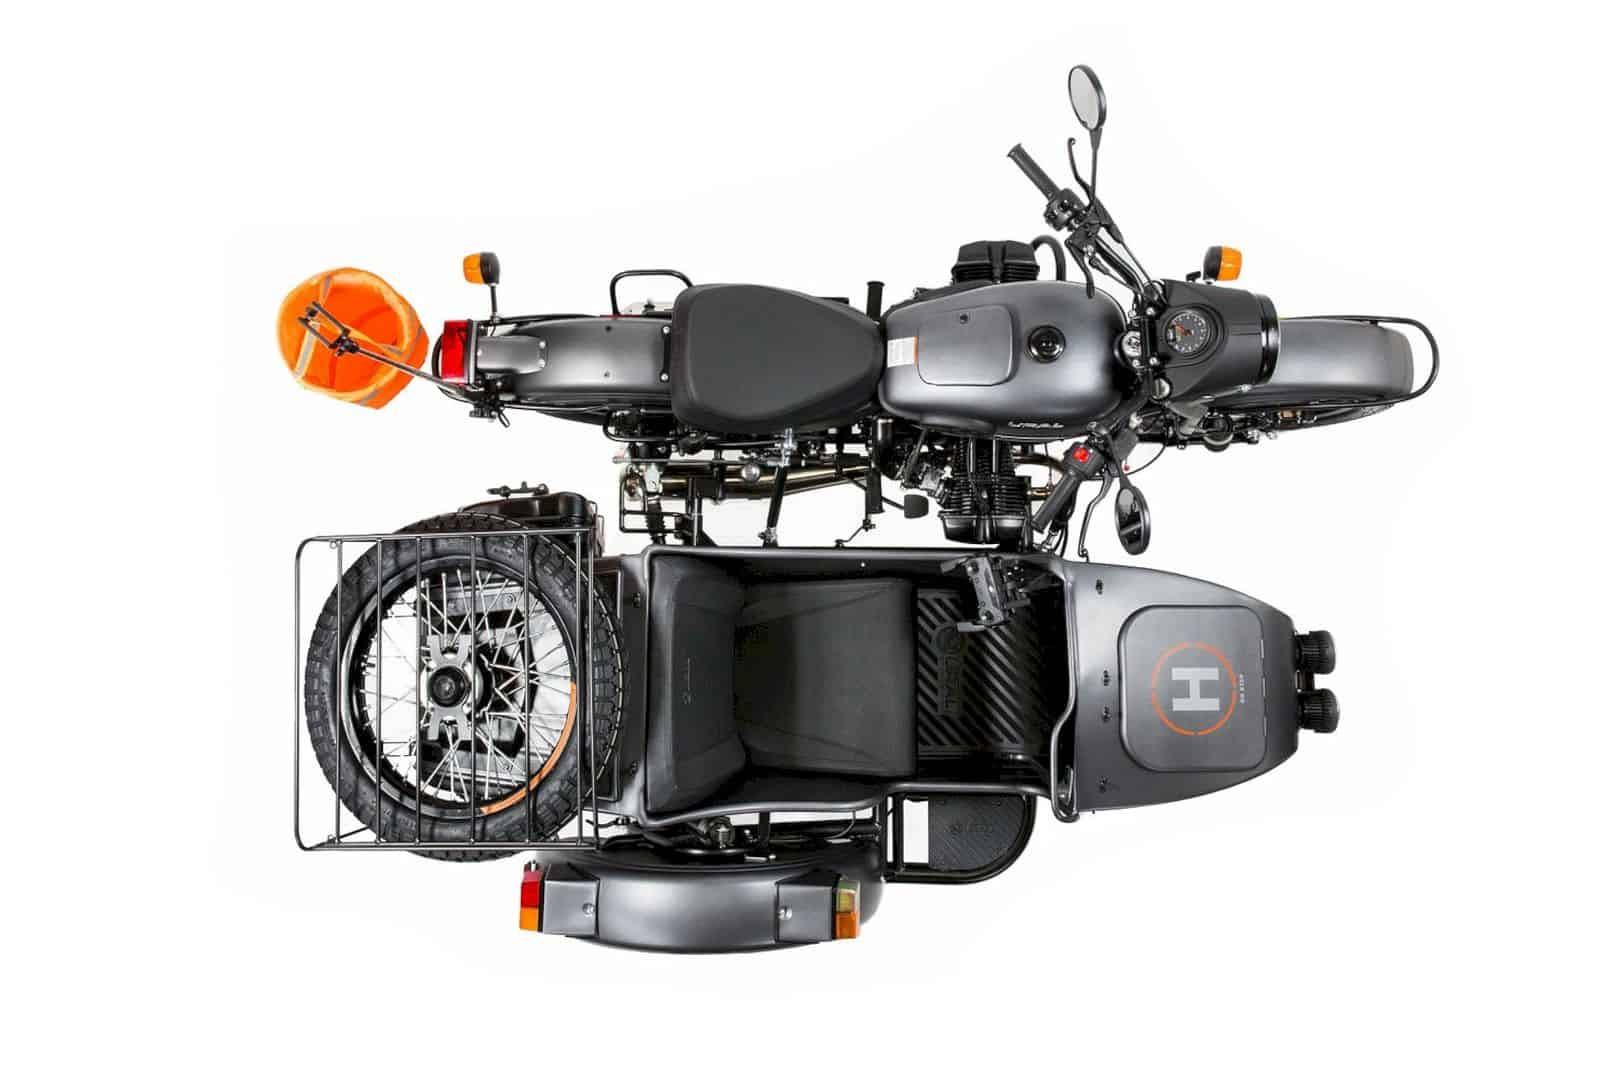 Limited Edition Ural Air: encourages riders to explore further on the ground and in the air